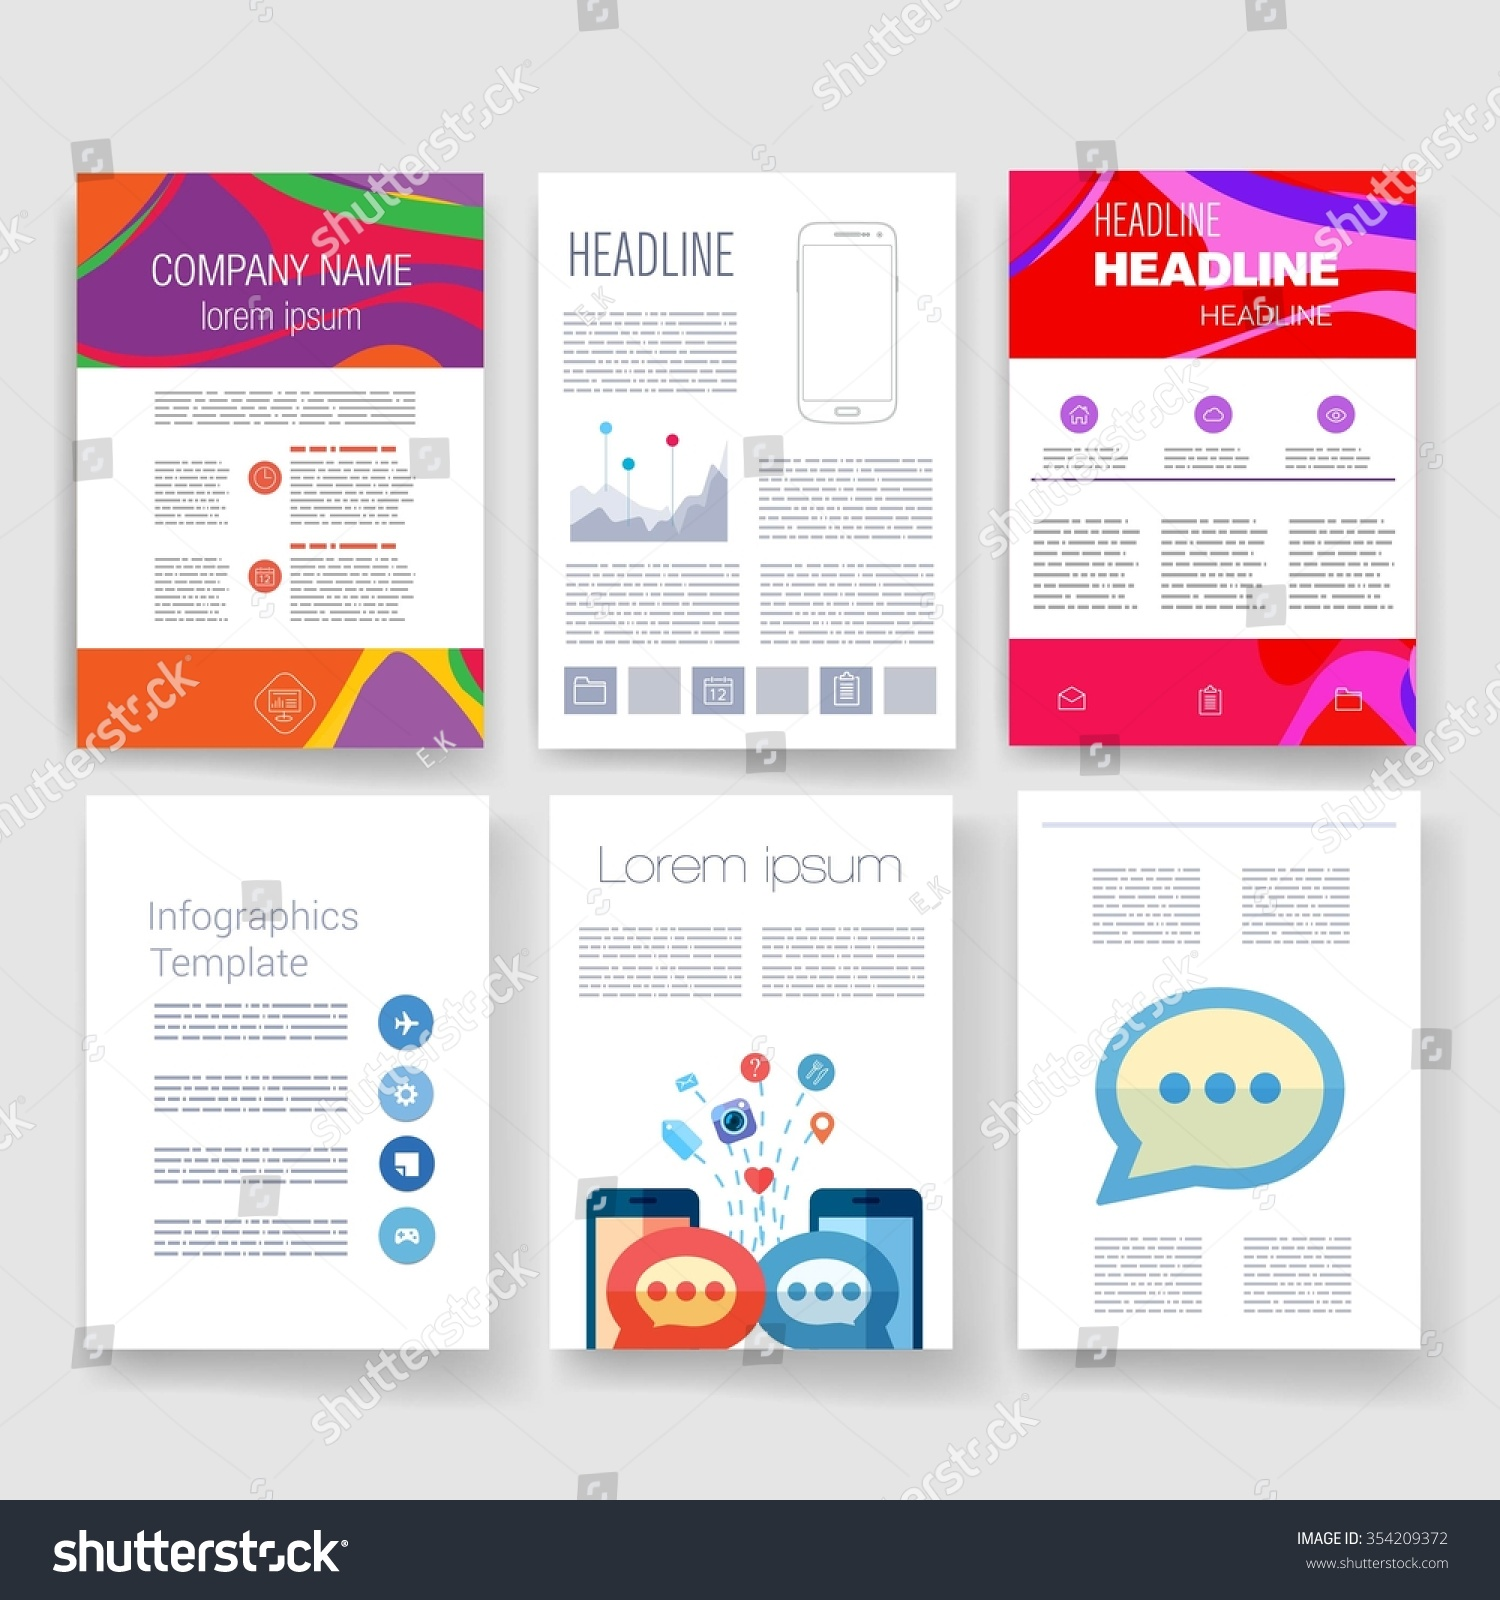 Famous 1.25 Button Template Tiny 12 Piece Puzzle Template Round 1st Time Job Resume 2.25 Button Template Youthful 2007 Word Templates Soft2015 Calendar Template Microsoft Brochure Design Template Set Templates Design Stock Vector ..